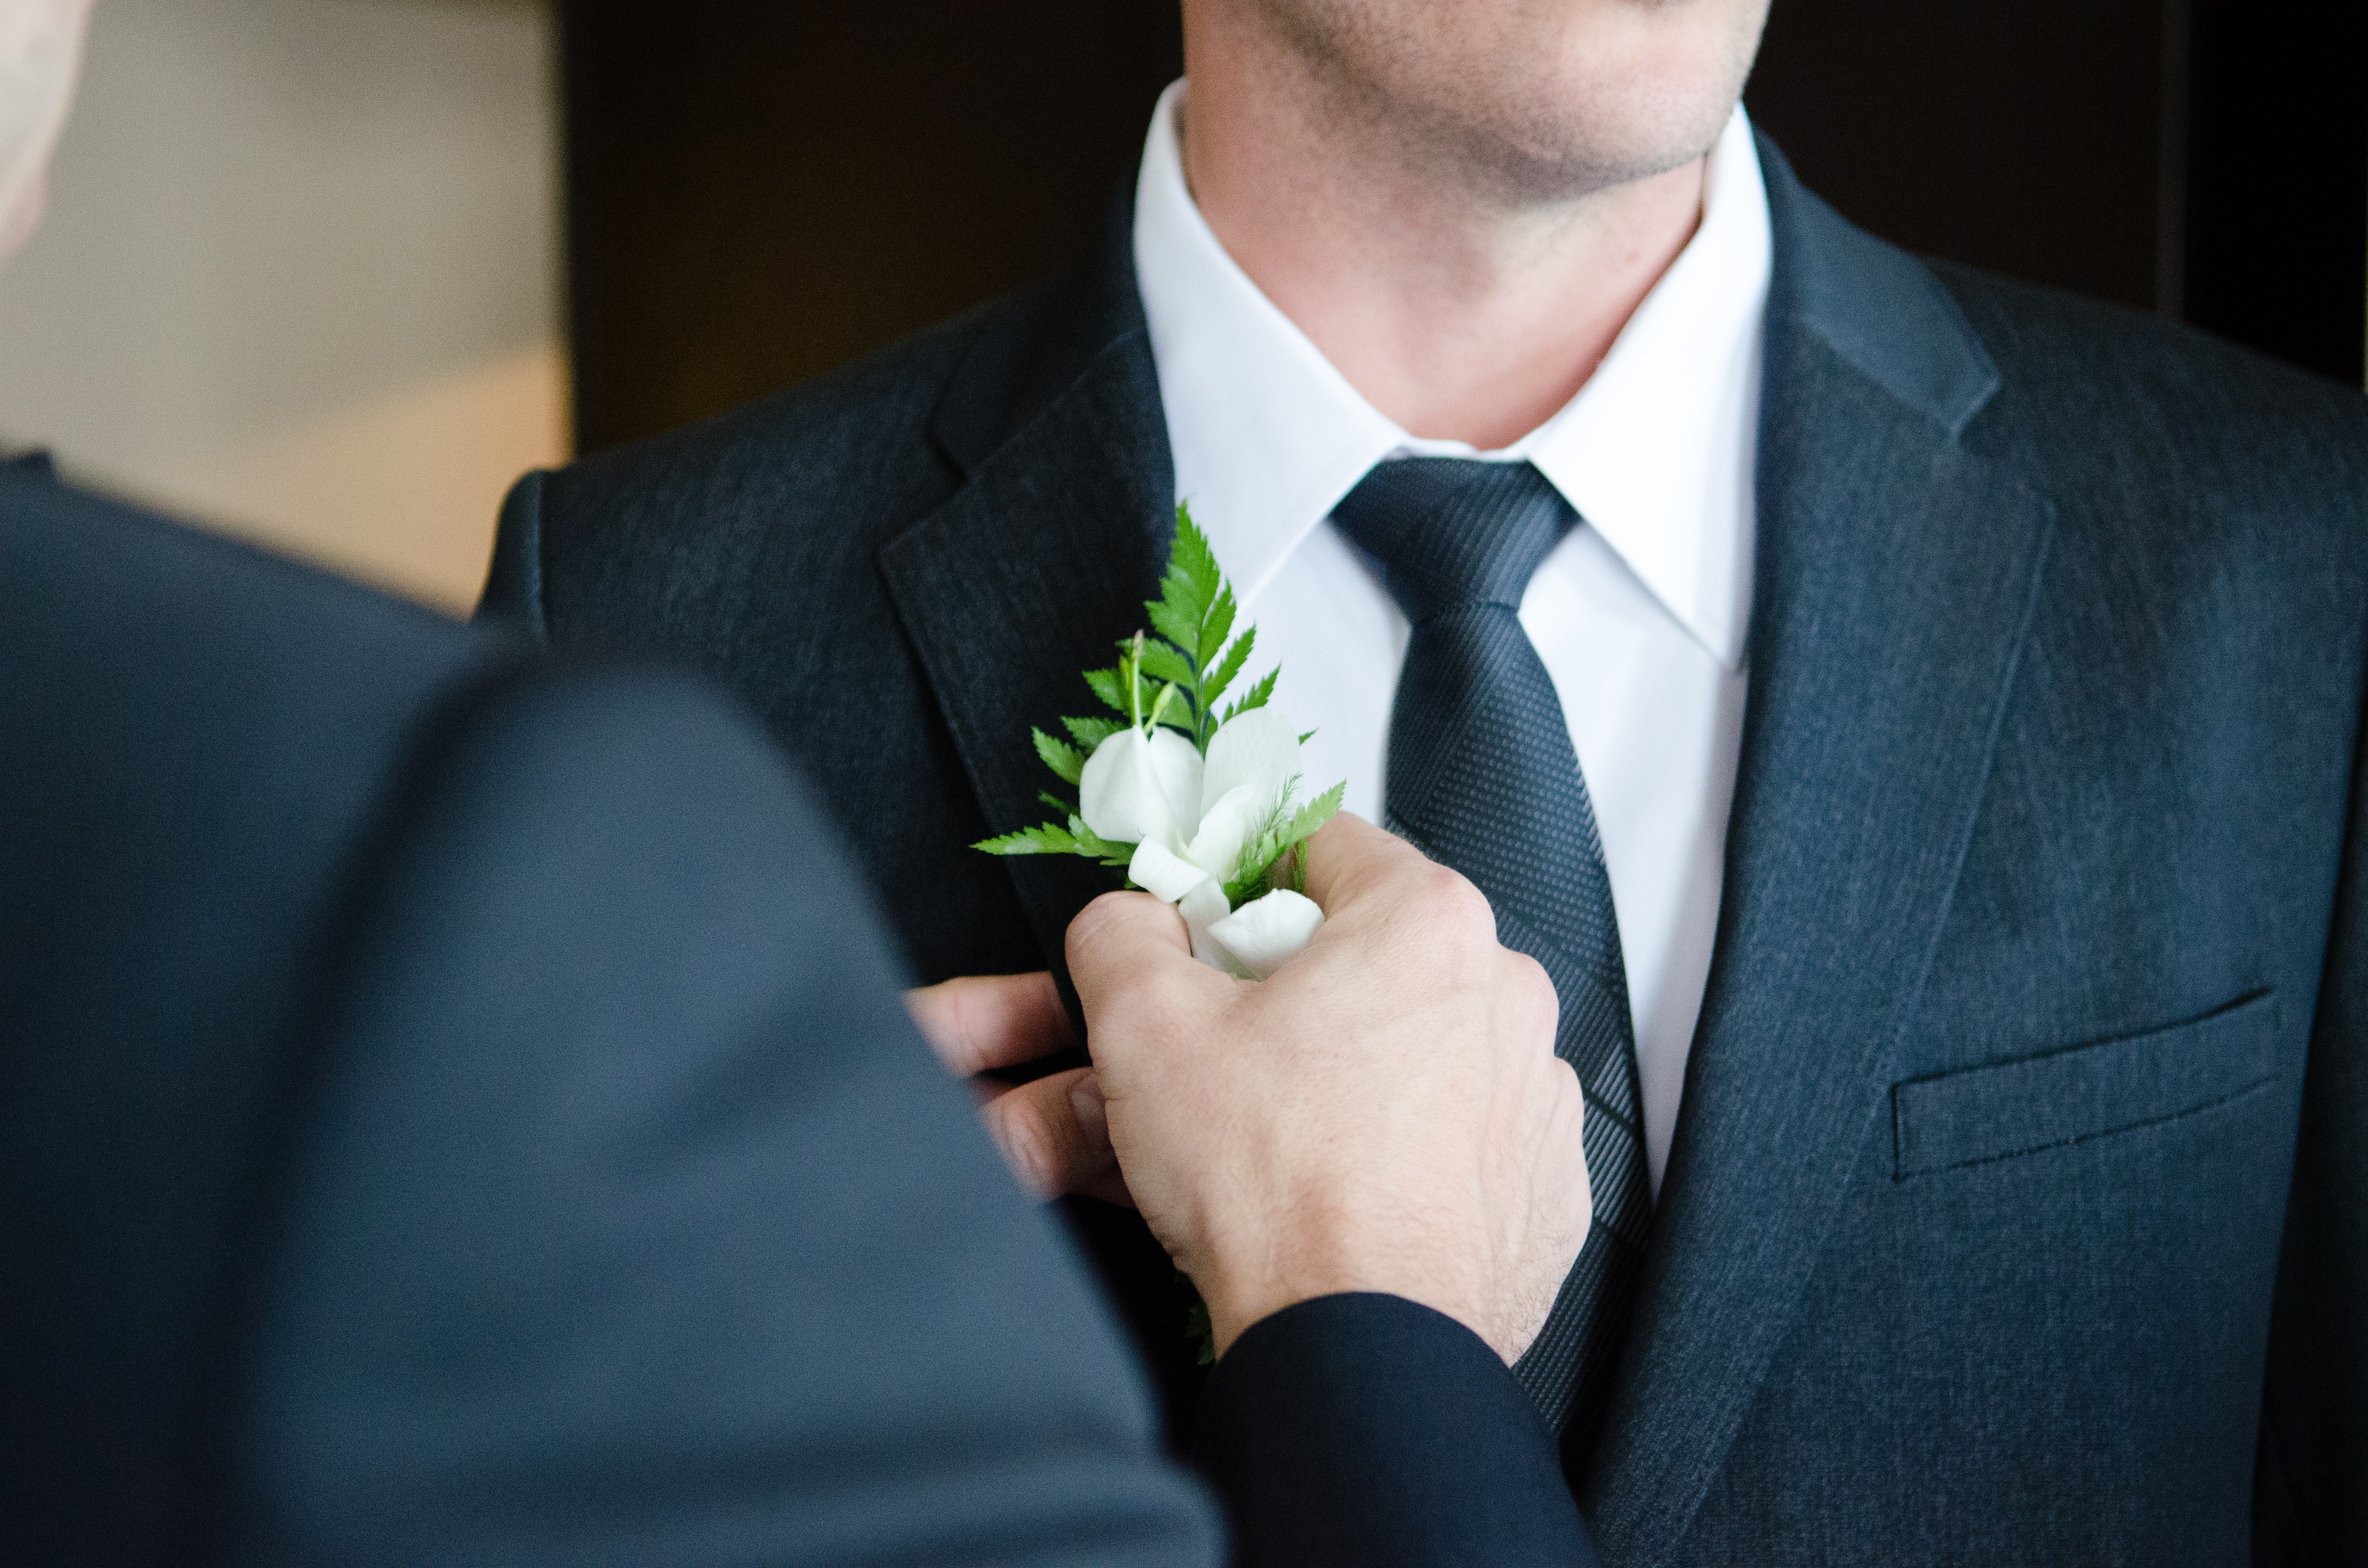 A groomsman in a suit pins a boutonniere on the groom, who wears a black tie